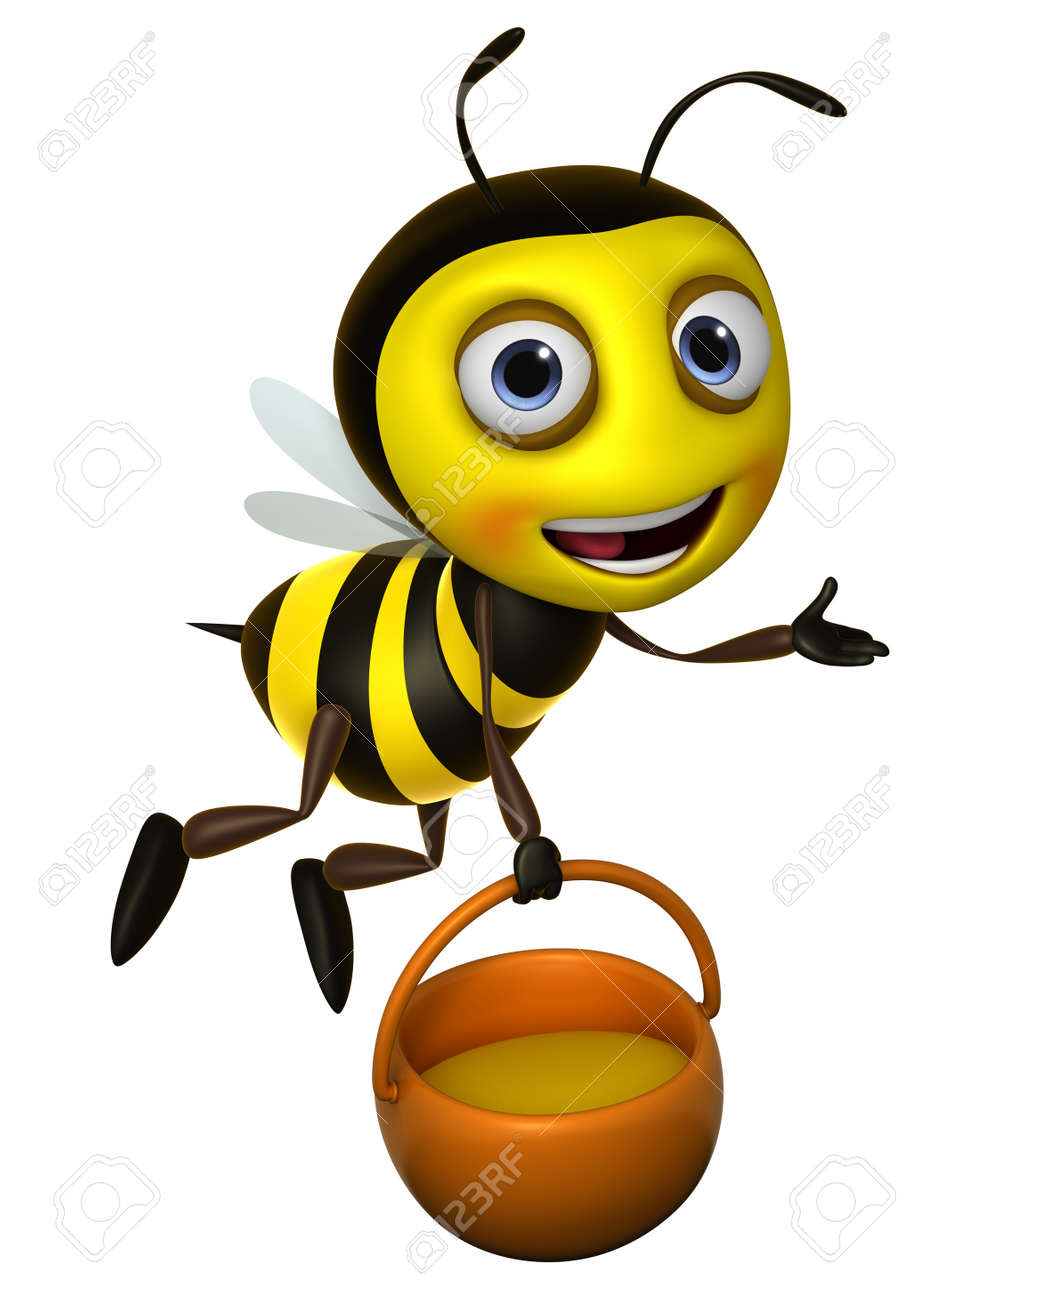 5 731 bumble bee stock vector illustration and royalty free bumble